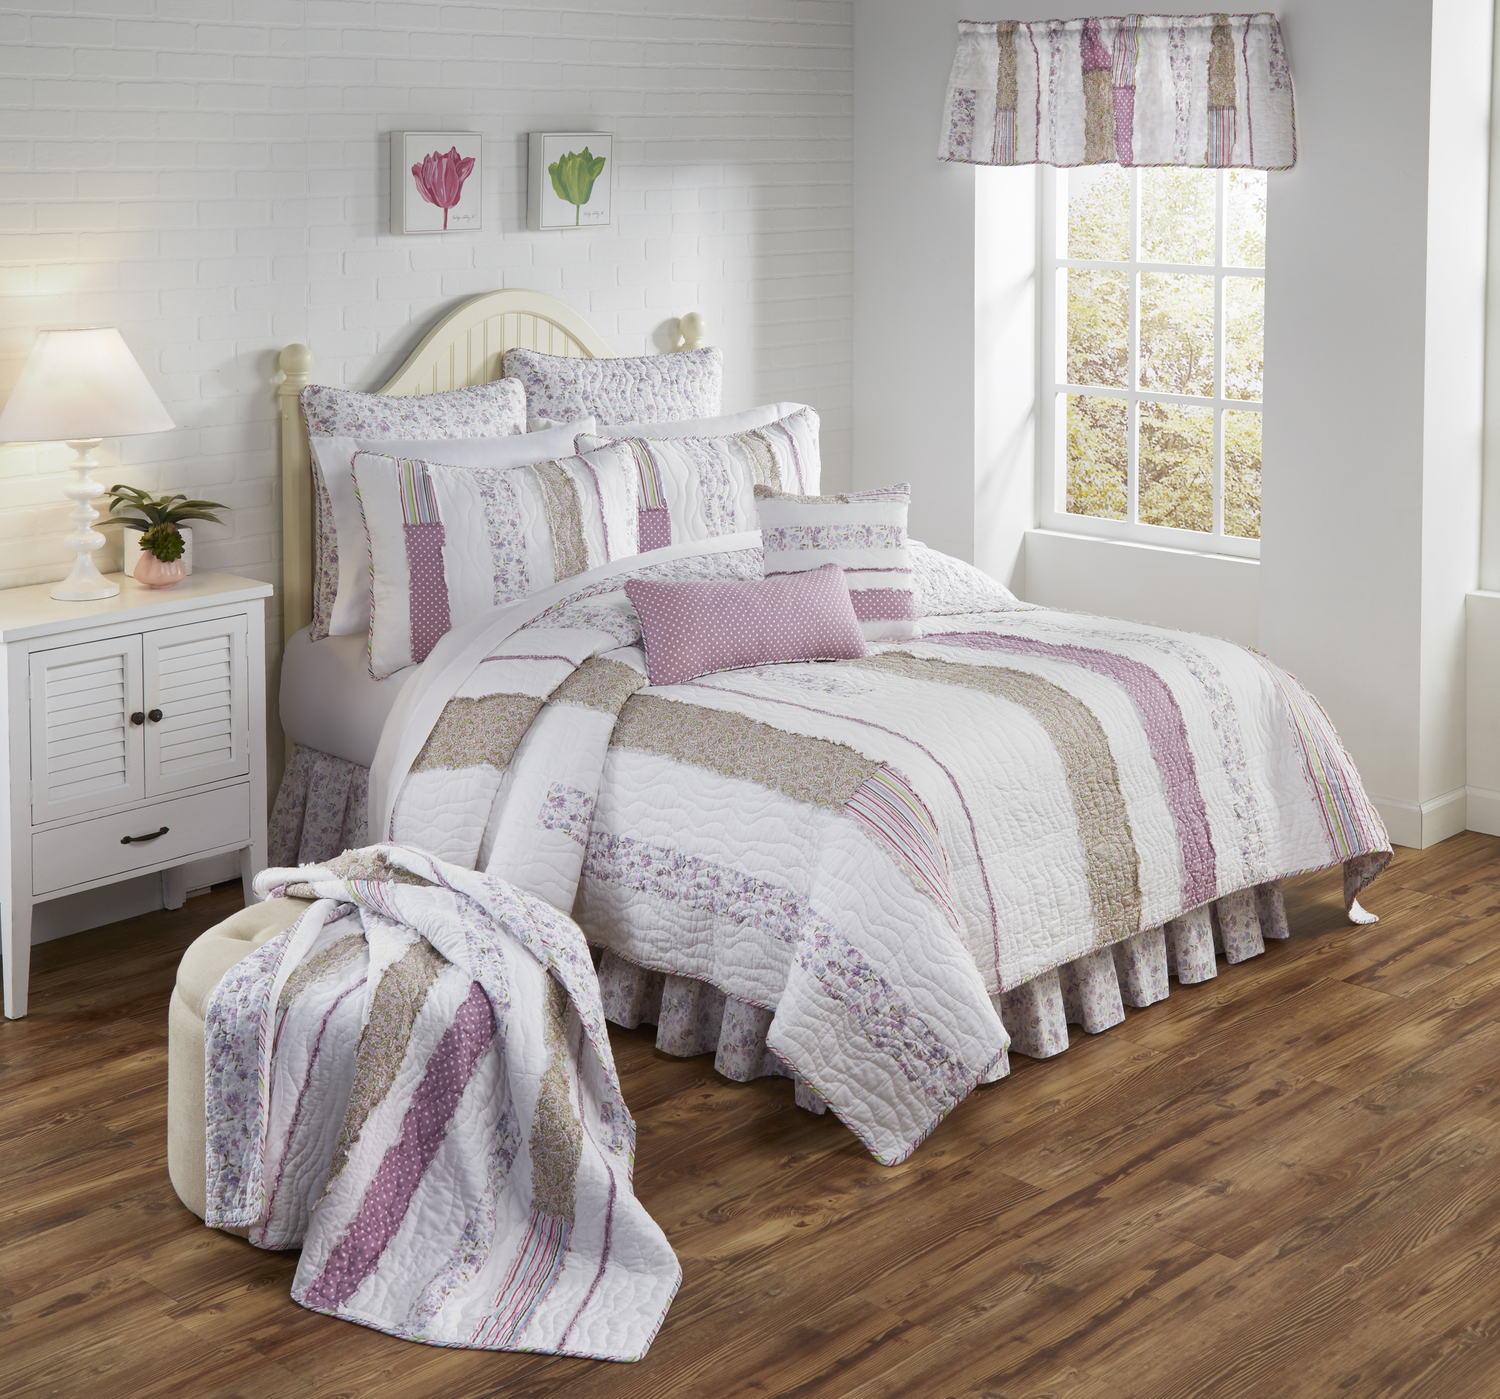 Lavender Rail By Donna Sharp Quilts Beddingsuperstore Com